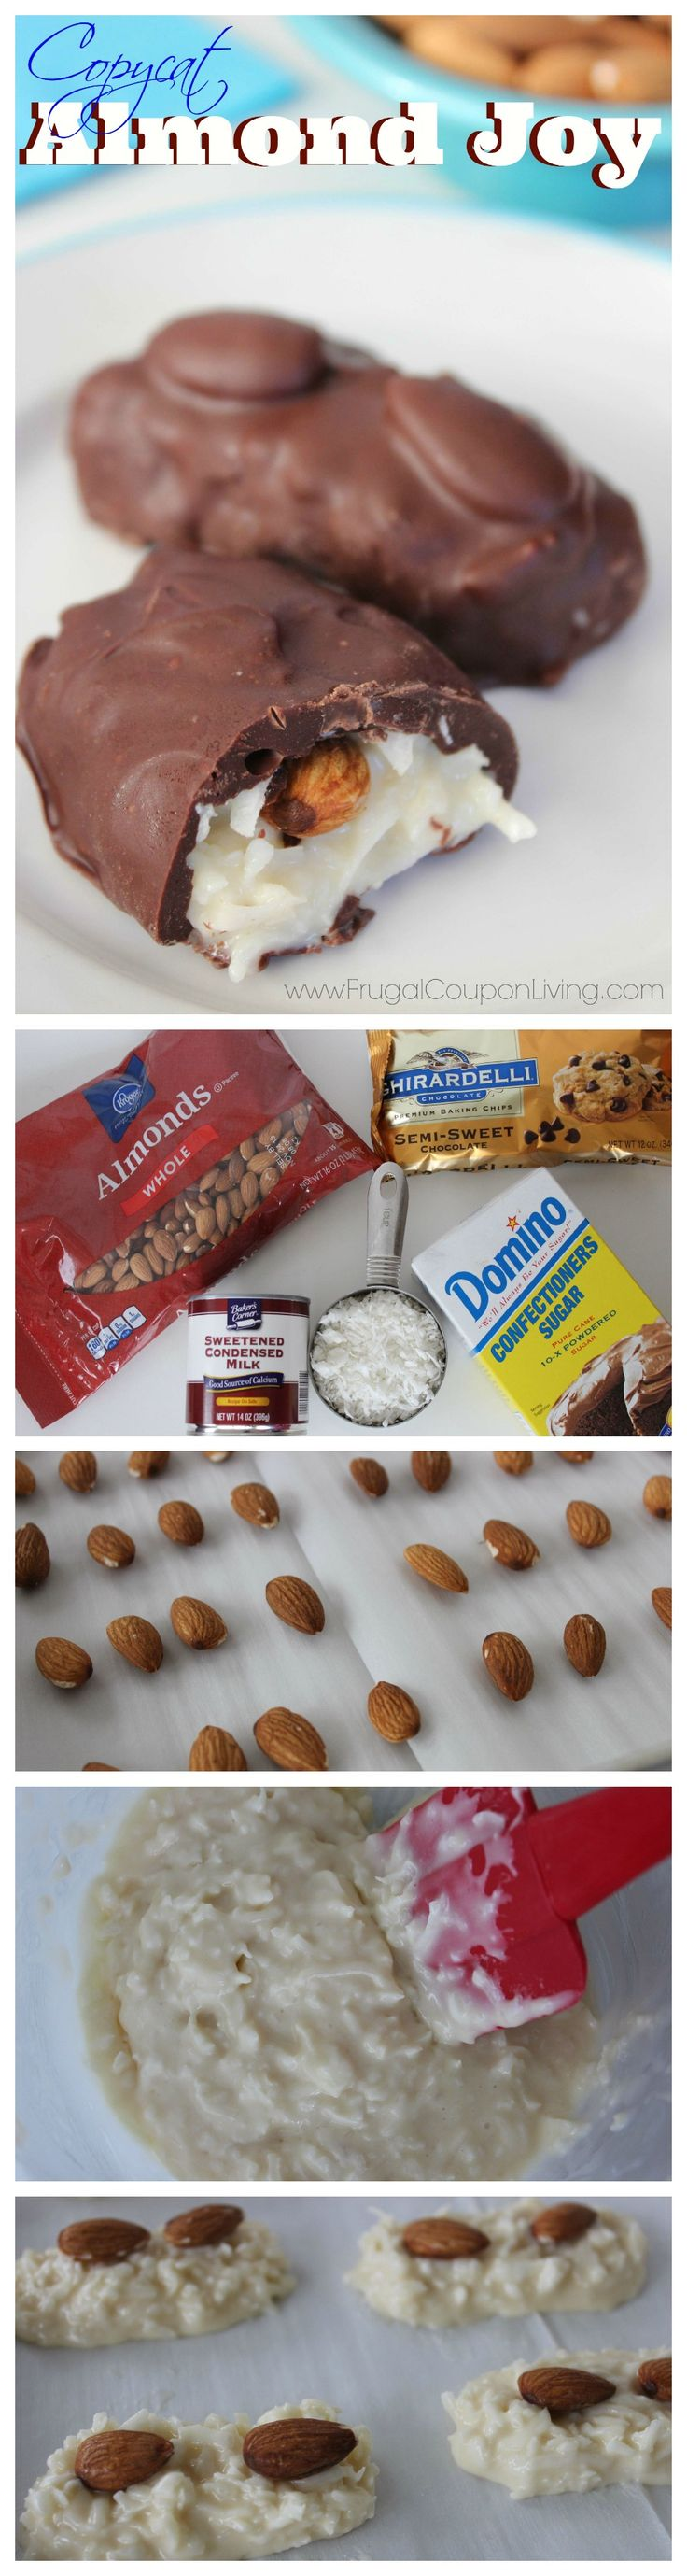 Frugal Coupon Living's Easy Copycat Almond Joy -  Homemade Almond Coconut and Chocolate Treat. This is a homemade candy tutorial. Pin to Pinterest.